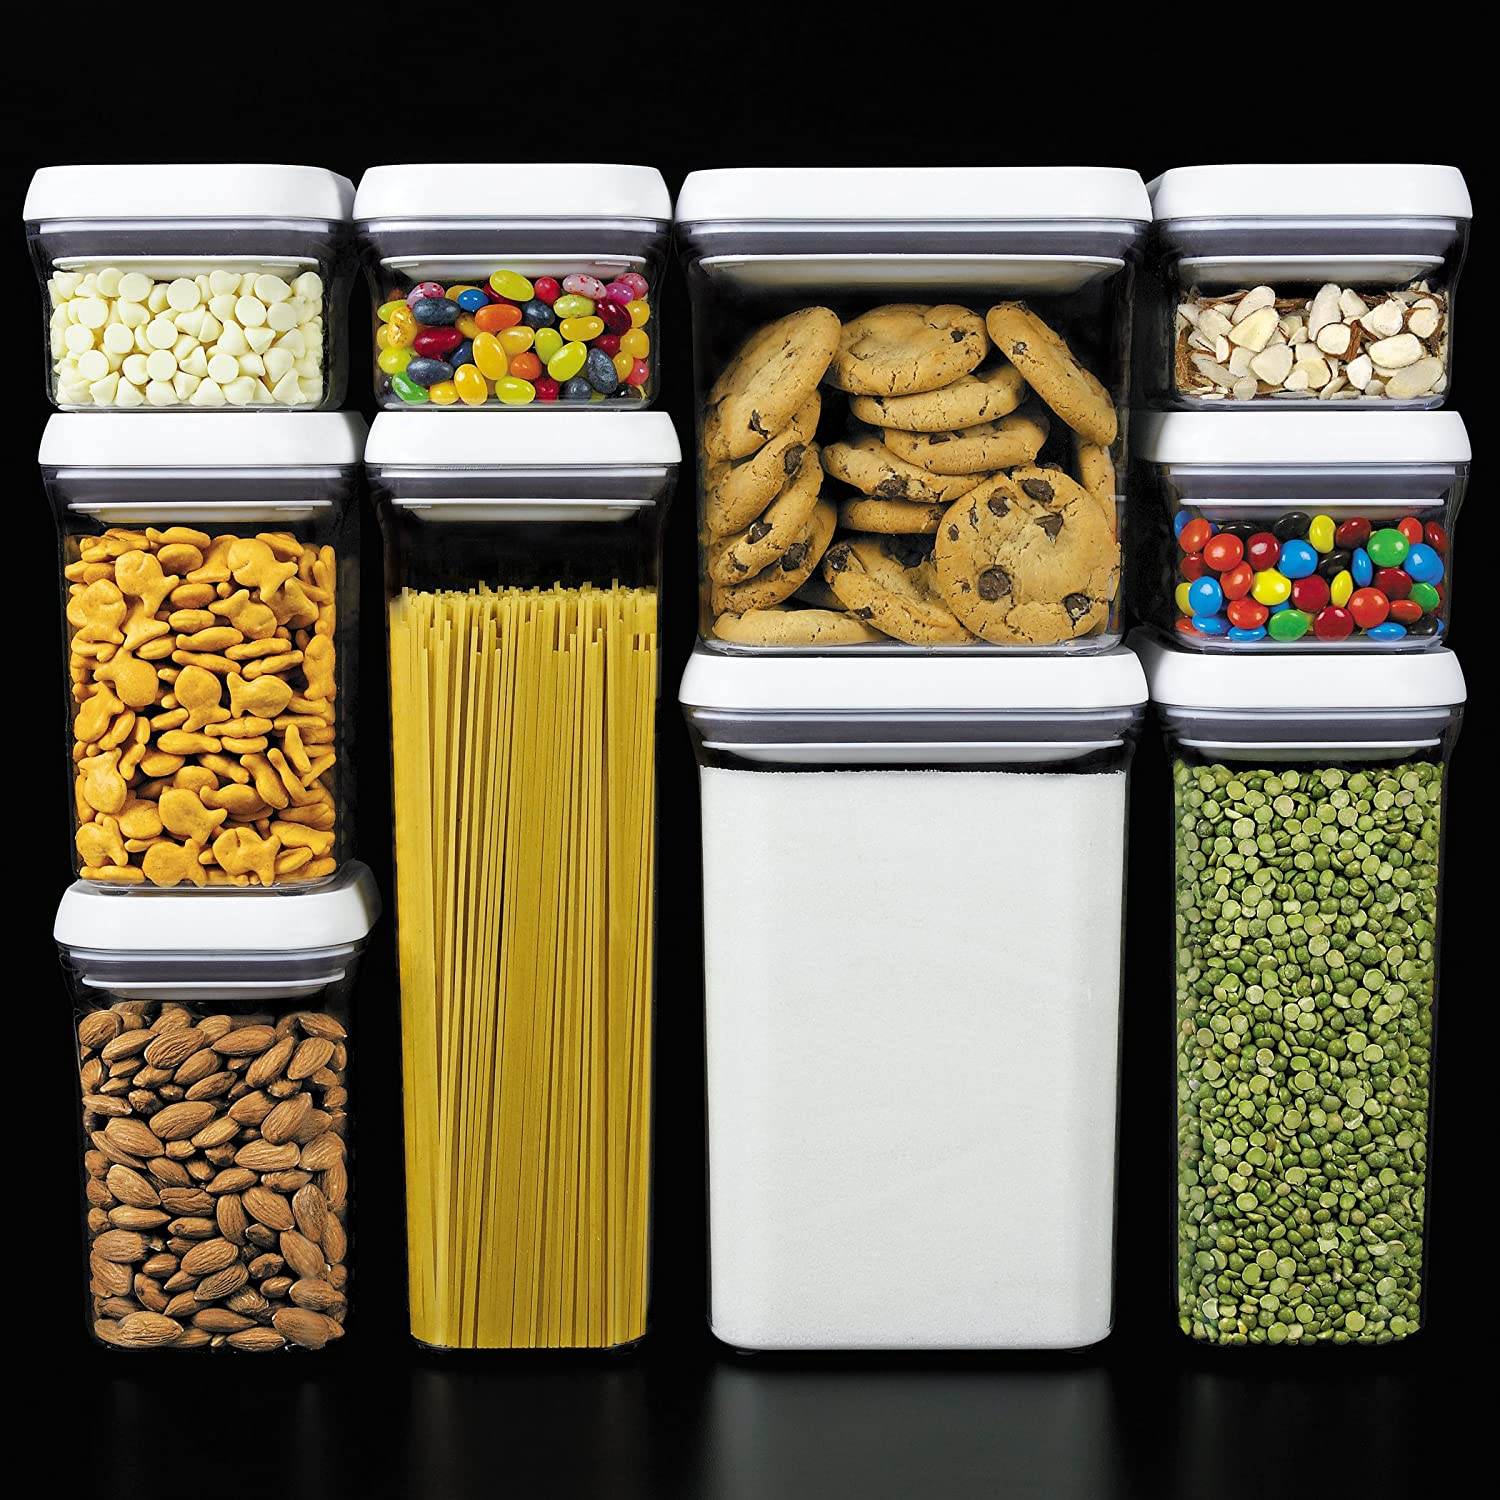 OXO Good Grips 10 Piece Airtight Container Value Set 80 Shipped